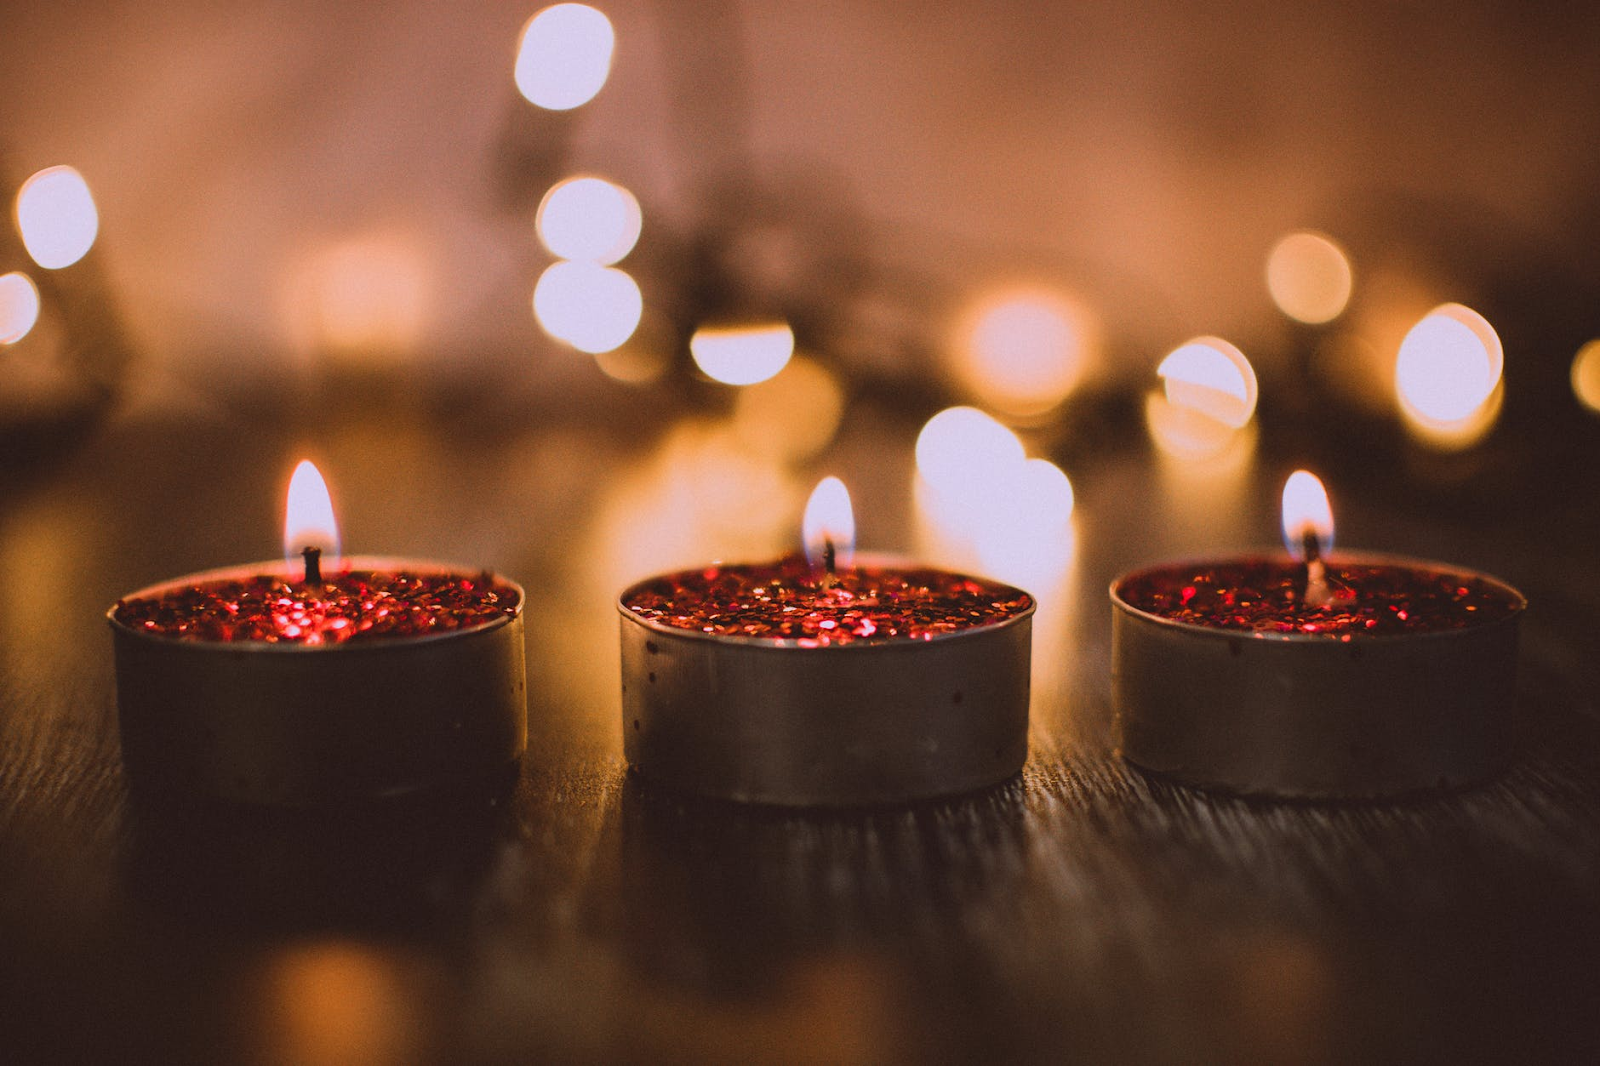 3 small tea light candles give the room a cozy glow